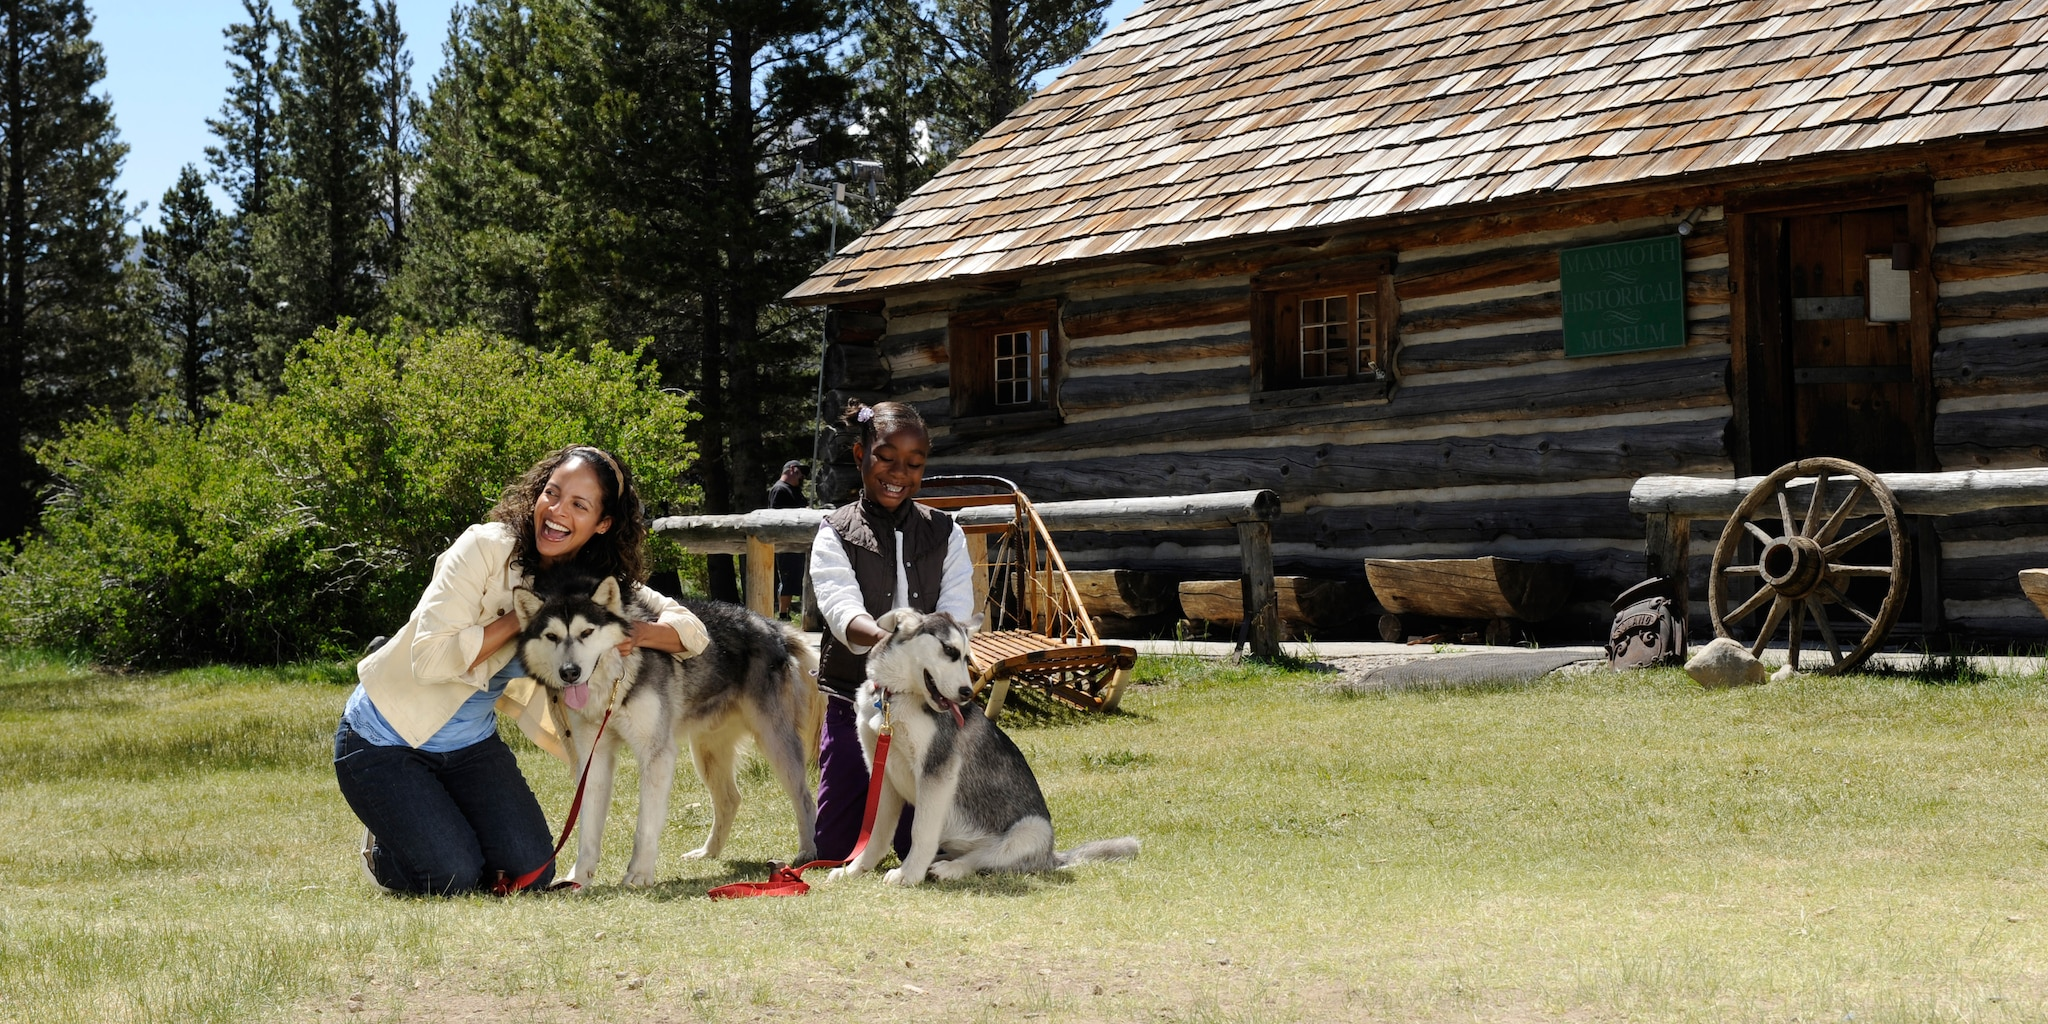 A mother and daughter pet two Siberian Huskies outside a log cabin